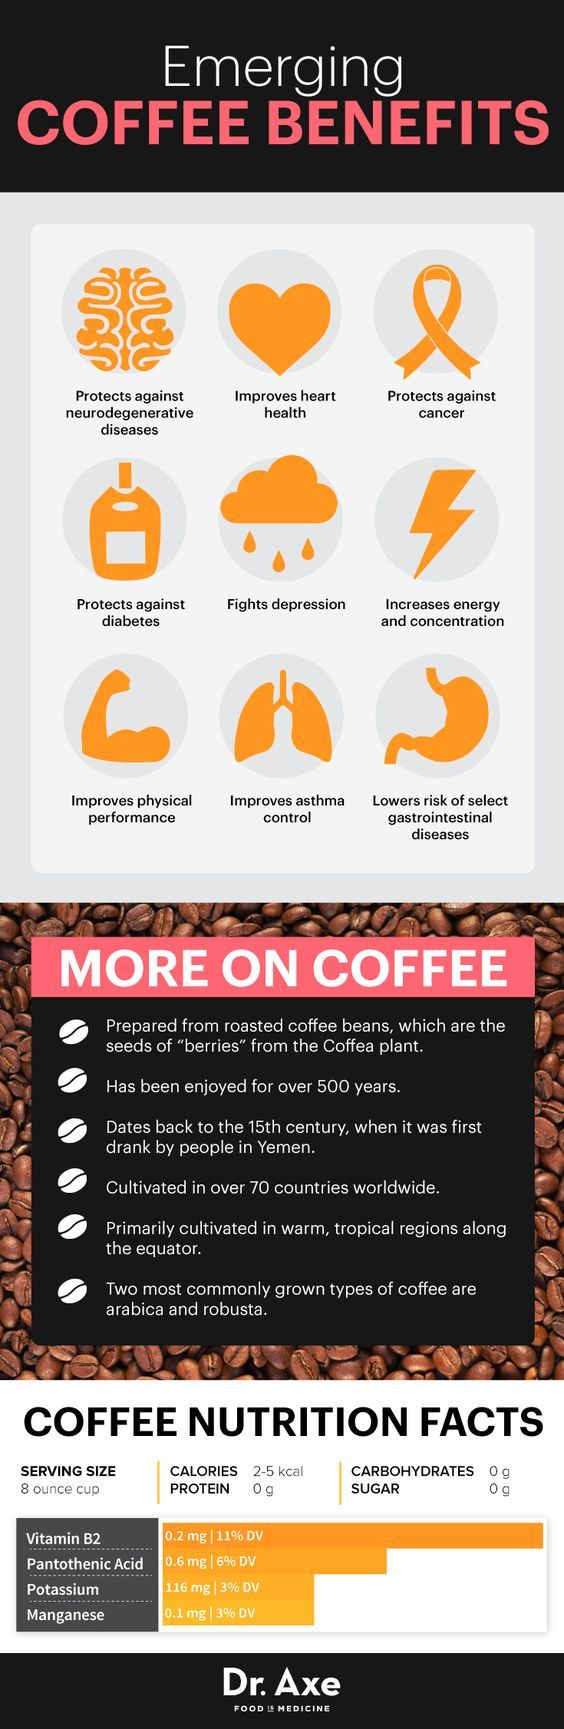 Coffee is often noted for its metabolism boosting ability. According to LiveStrong.com, this is a result of the caffeine that coffee contains. Caffeine is the main ingredient in many fat burner supplements, but the truth is you don't need those expensive powders to reap the benefits of caffeine.  But coffee isn't just going to help you shape your waistline, there are tons of hidden benefits in your morning cup of joe. Keep reading to find out!